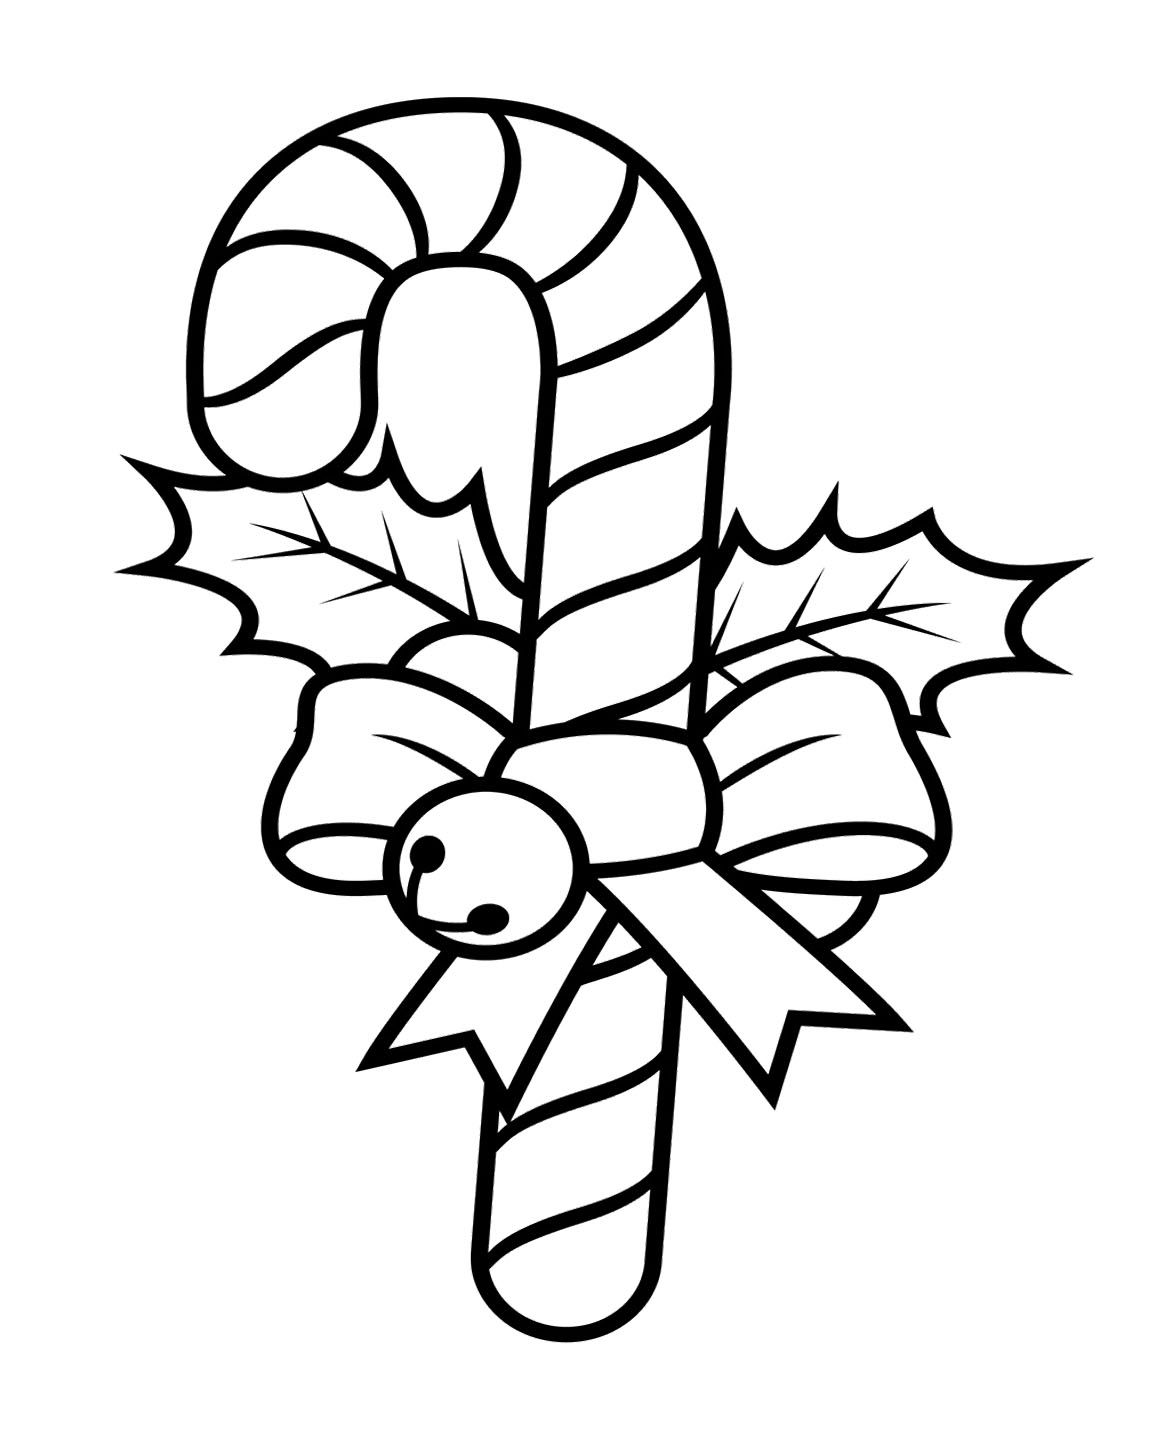 beauty for the holidays | Candy cane coloring page, Christmas ... | 1452x1159